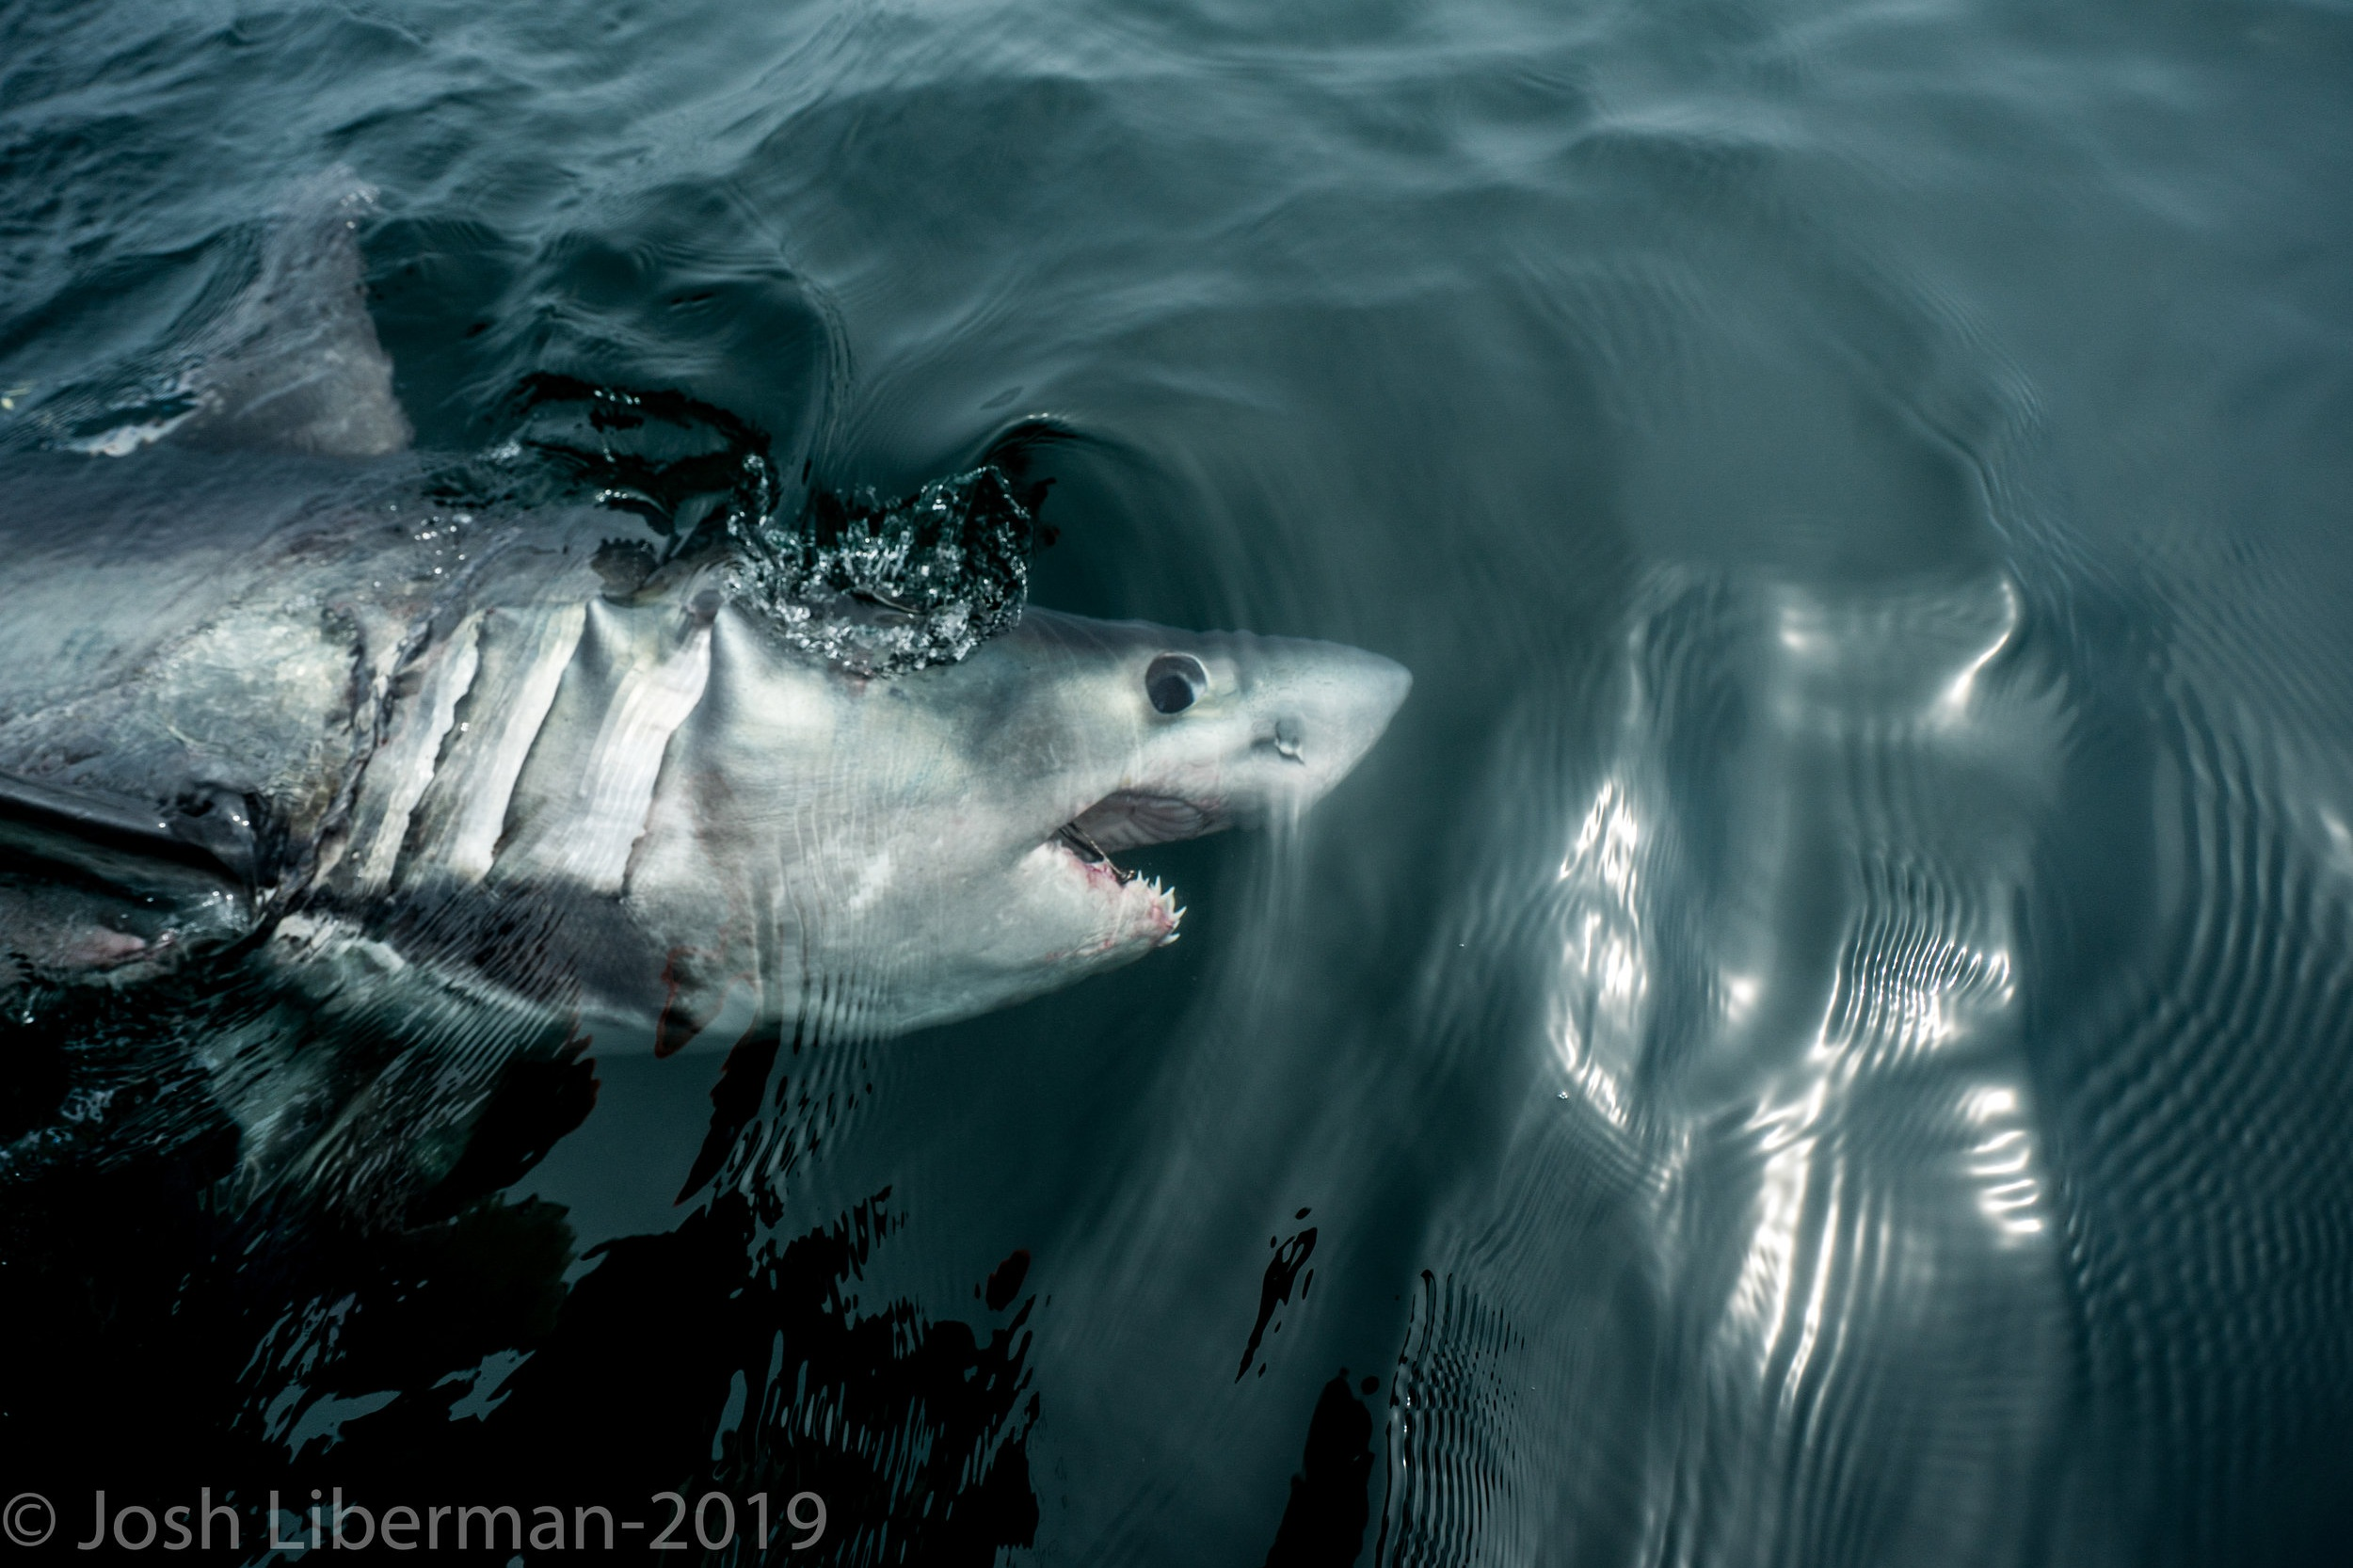 There are 13 species of sharks found in Cape Cod's waters, including the porbeagle shark.